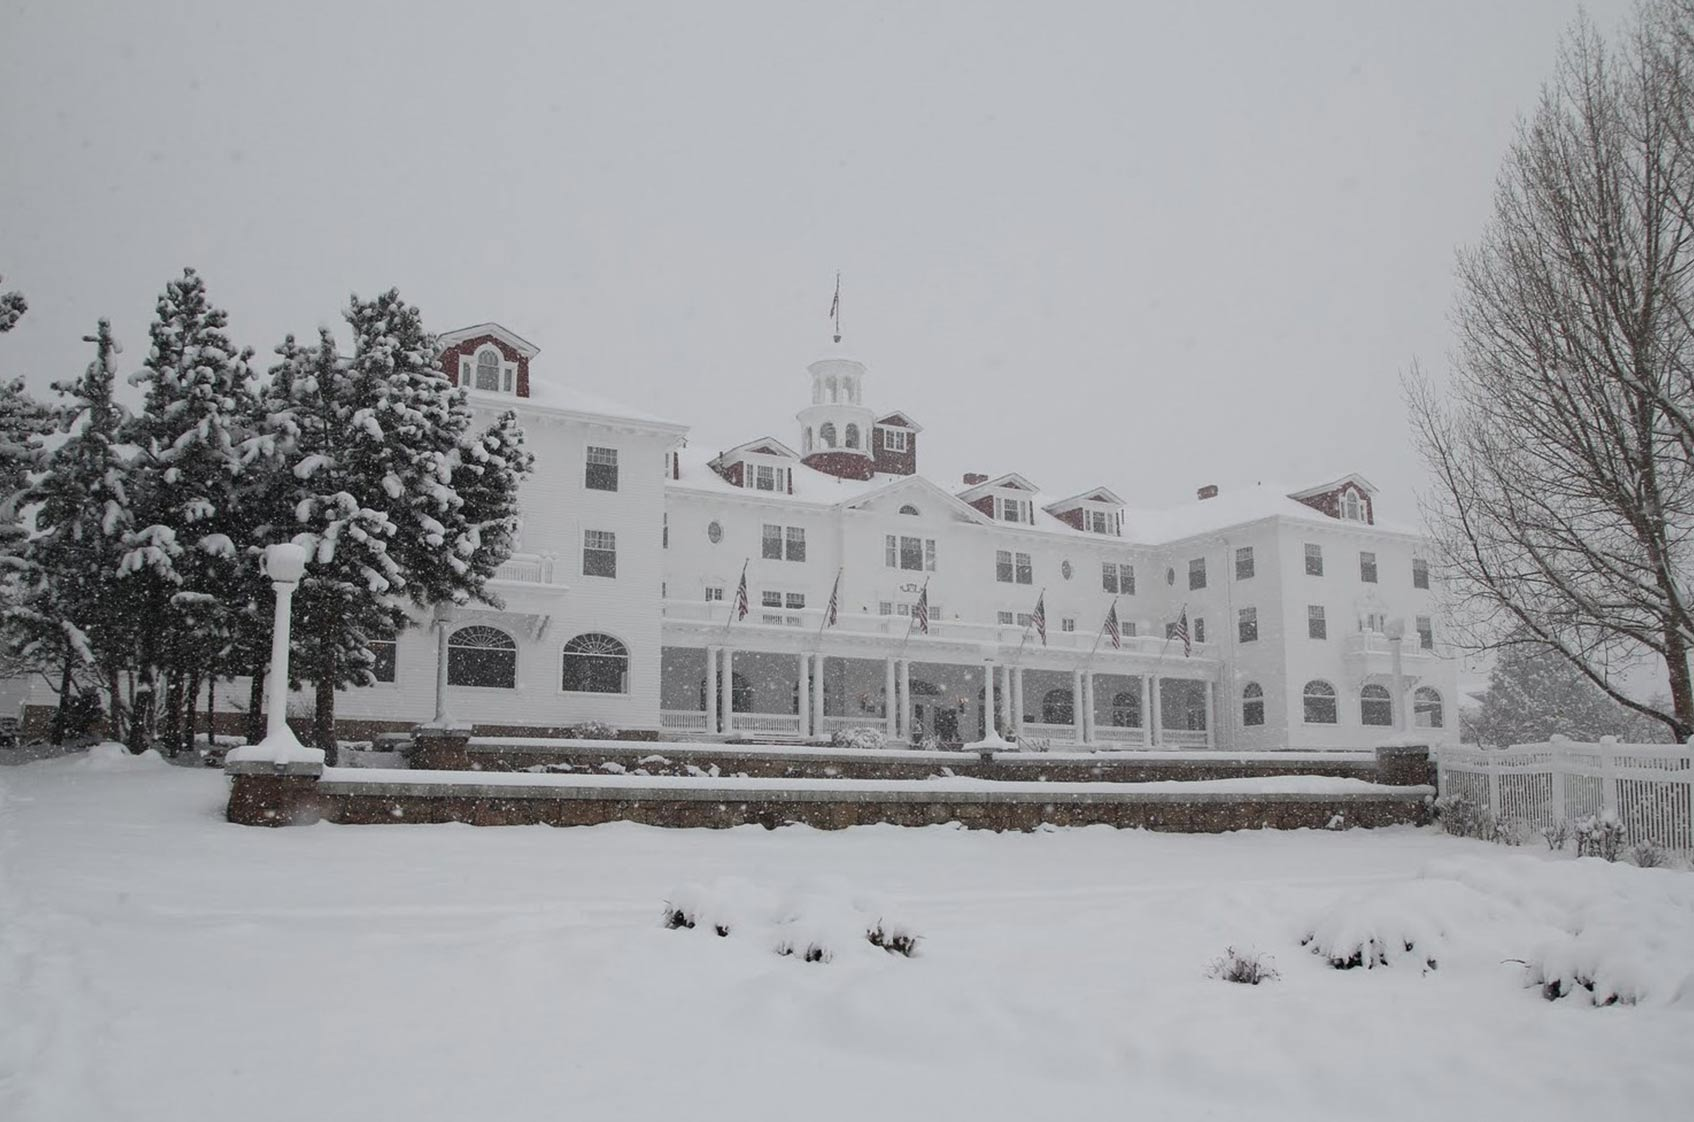 The Stanley Hotel in Feb, Estes Park, CO - by Sgerbic